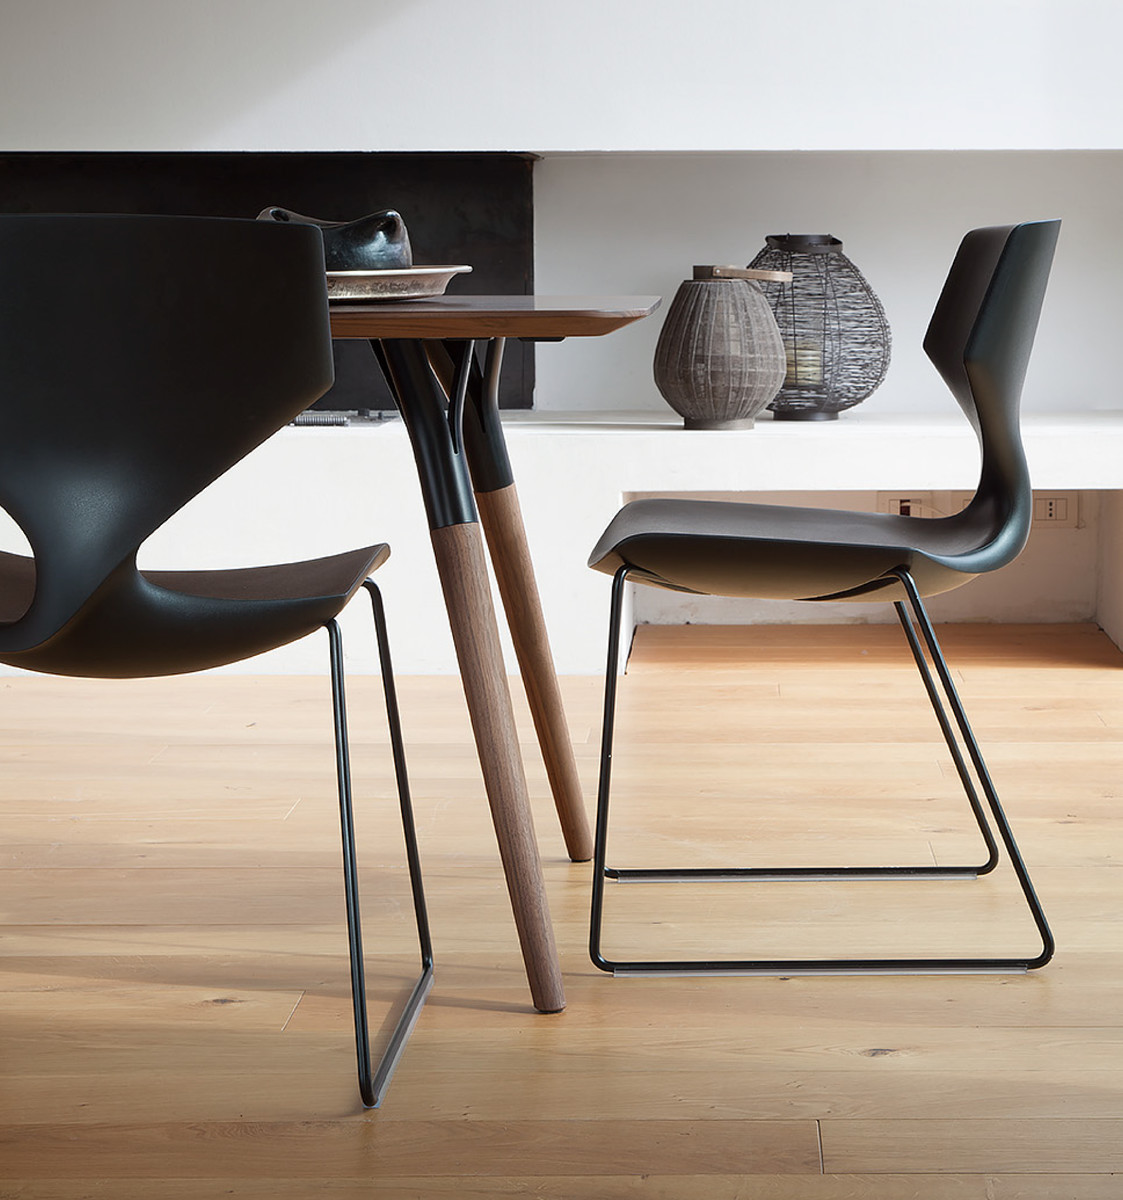 Quo is an elegant stacking chair which impresses with a very special twist in the back. The shell of Quo is available in many exciting colors and up to 40 pieces. The base is available in polished or matt black and white lacquered steel.  https://t.co/6xsrOwOdjV